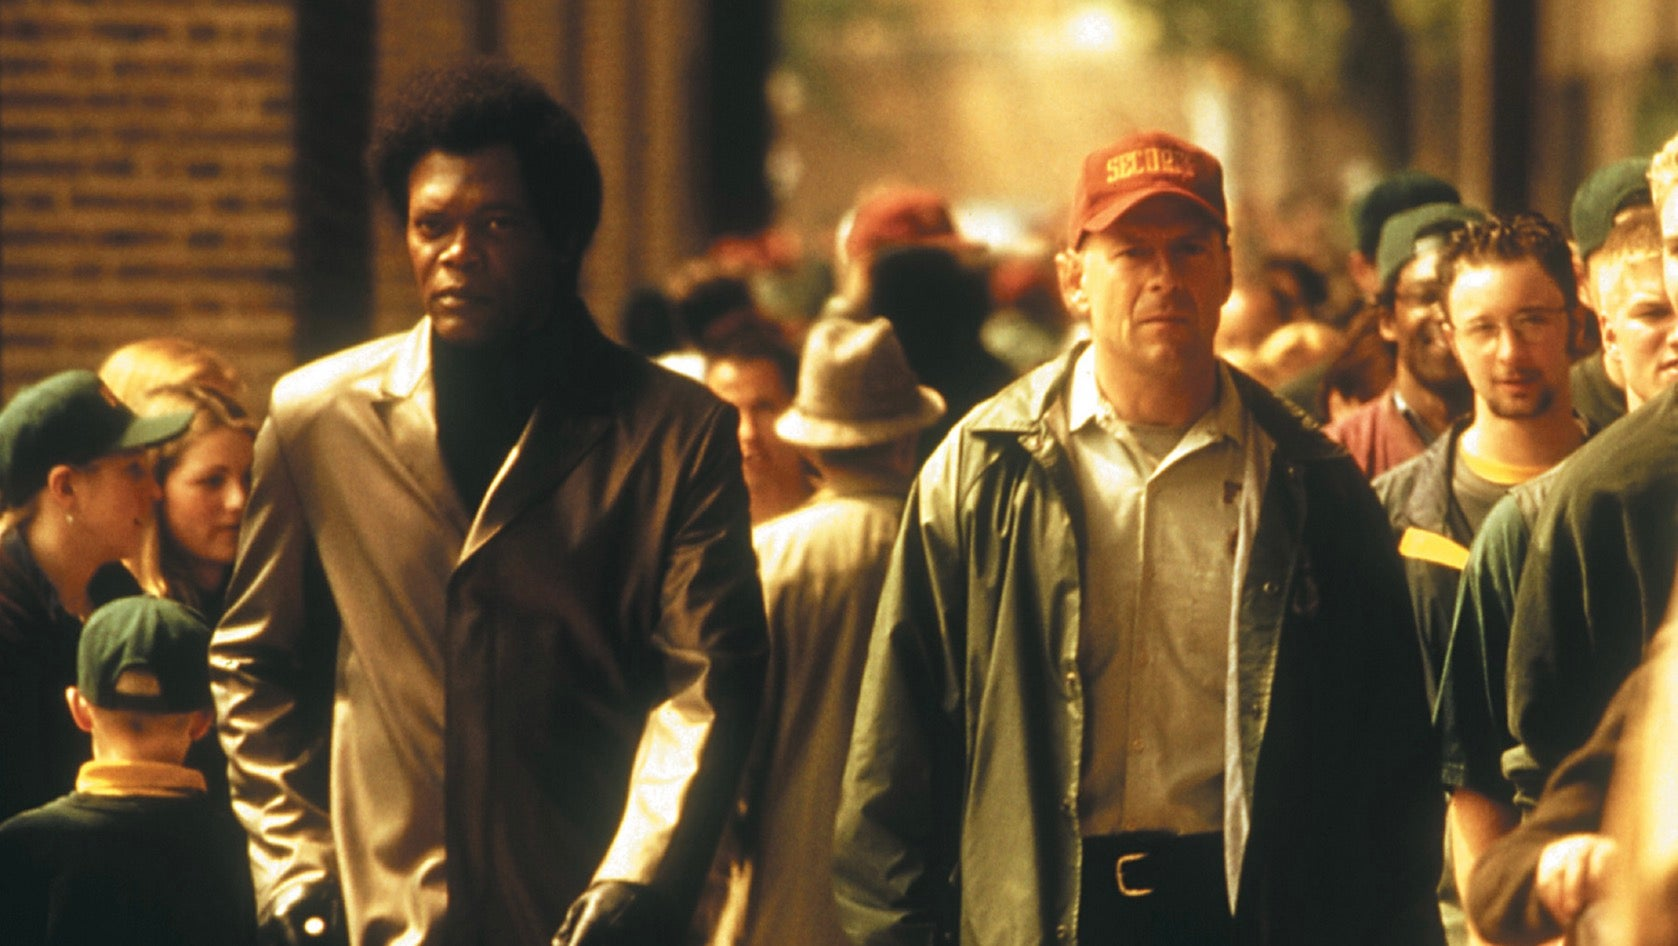 Glass, The Sequel Both To Split And Unbreakable, Will Be Out January 2019